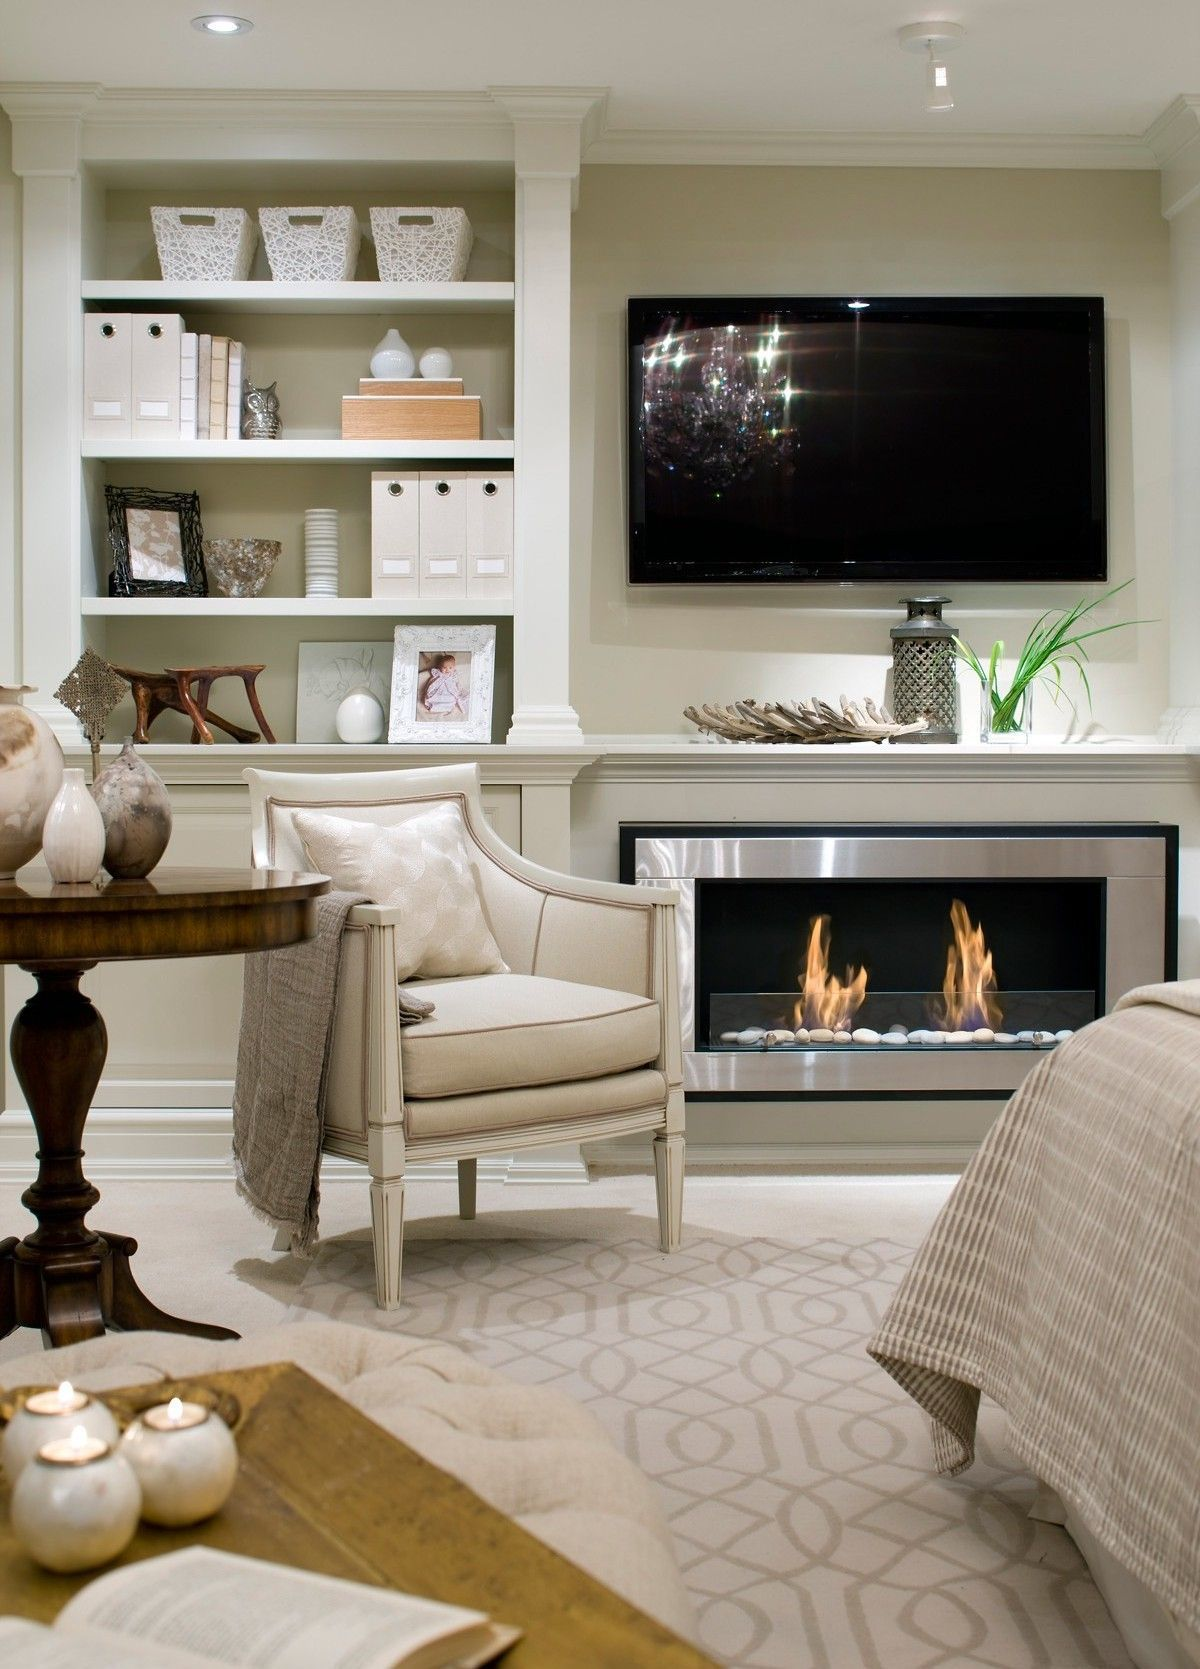 Cozy Up Your Master Bedroom With a Fireplace